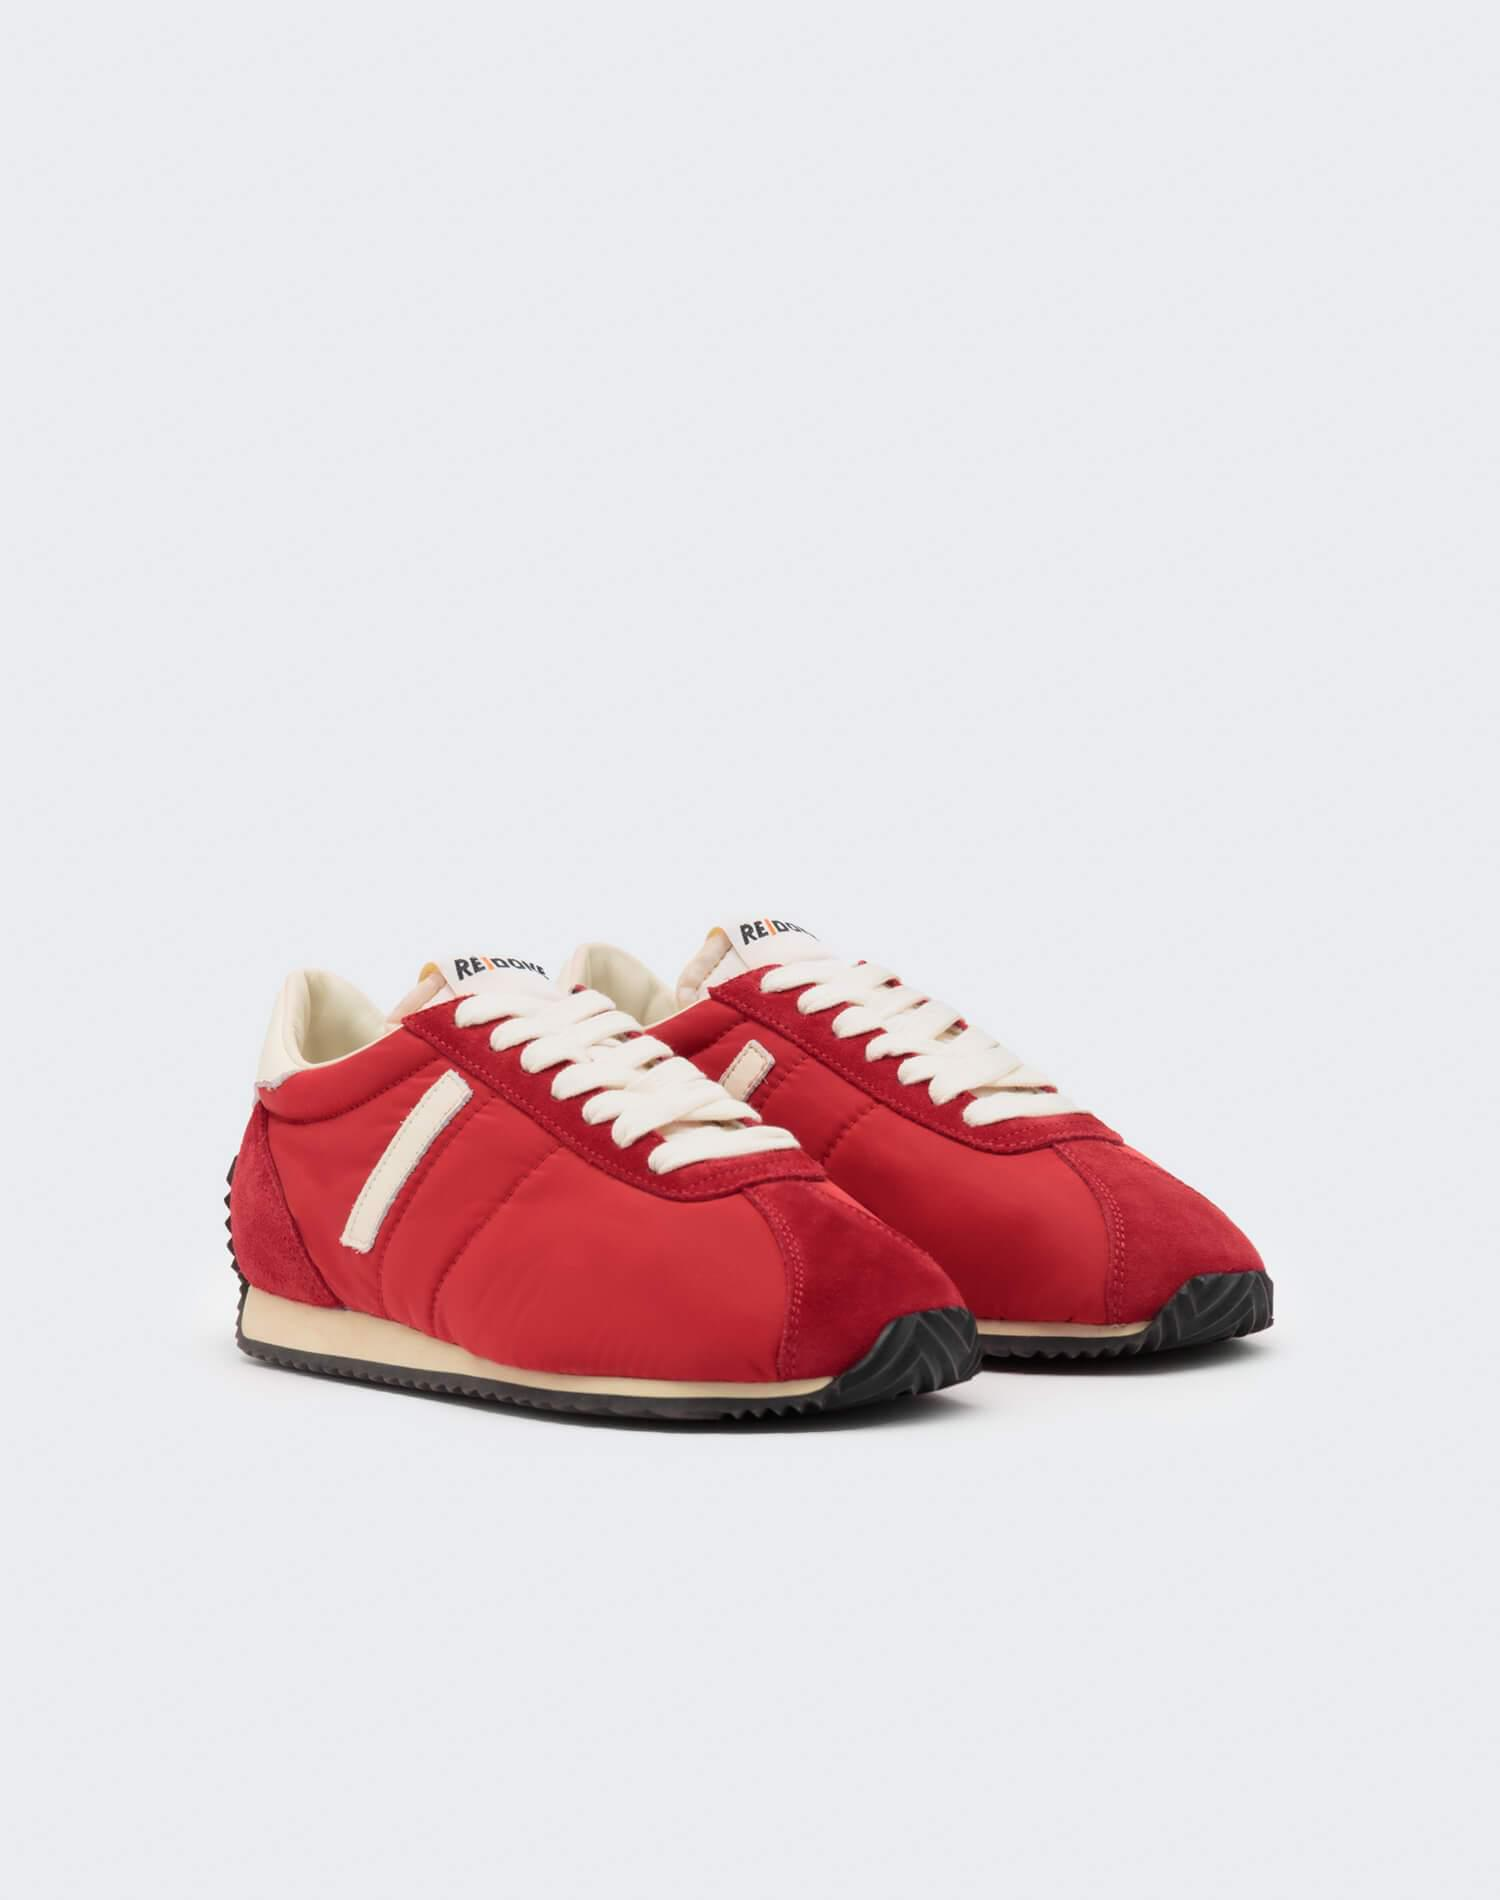 70s Runner Shoe - Red and White 1